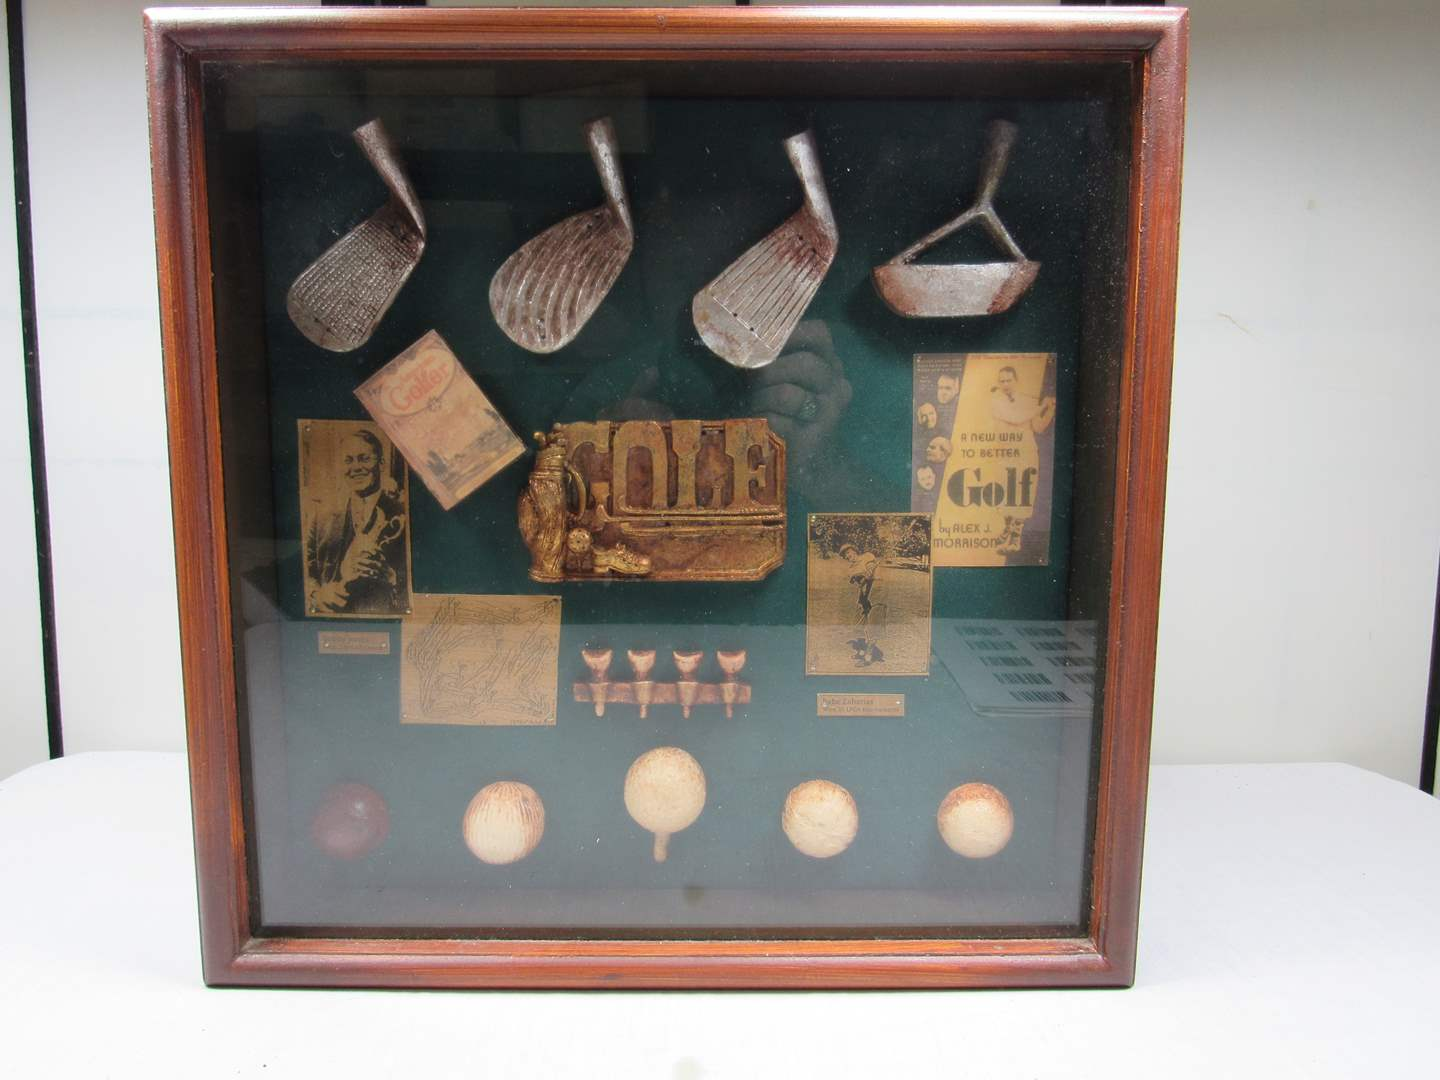 Lot # 246  Nice shadow box golf display (main image)